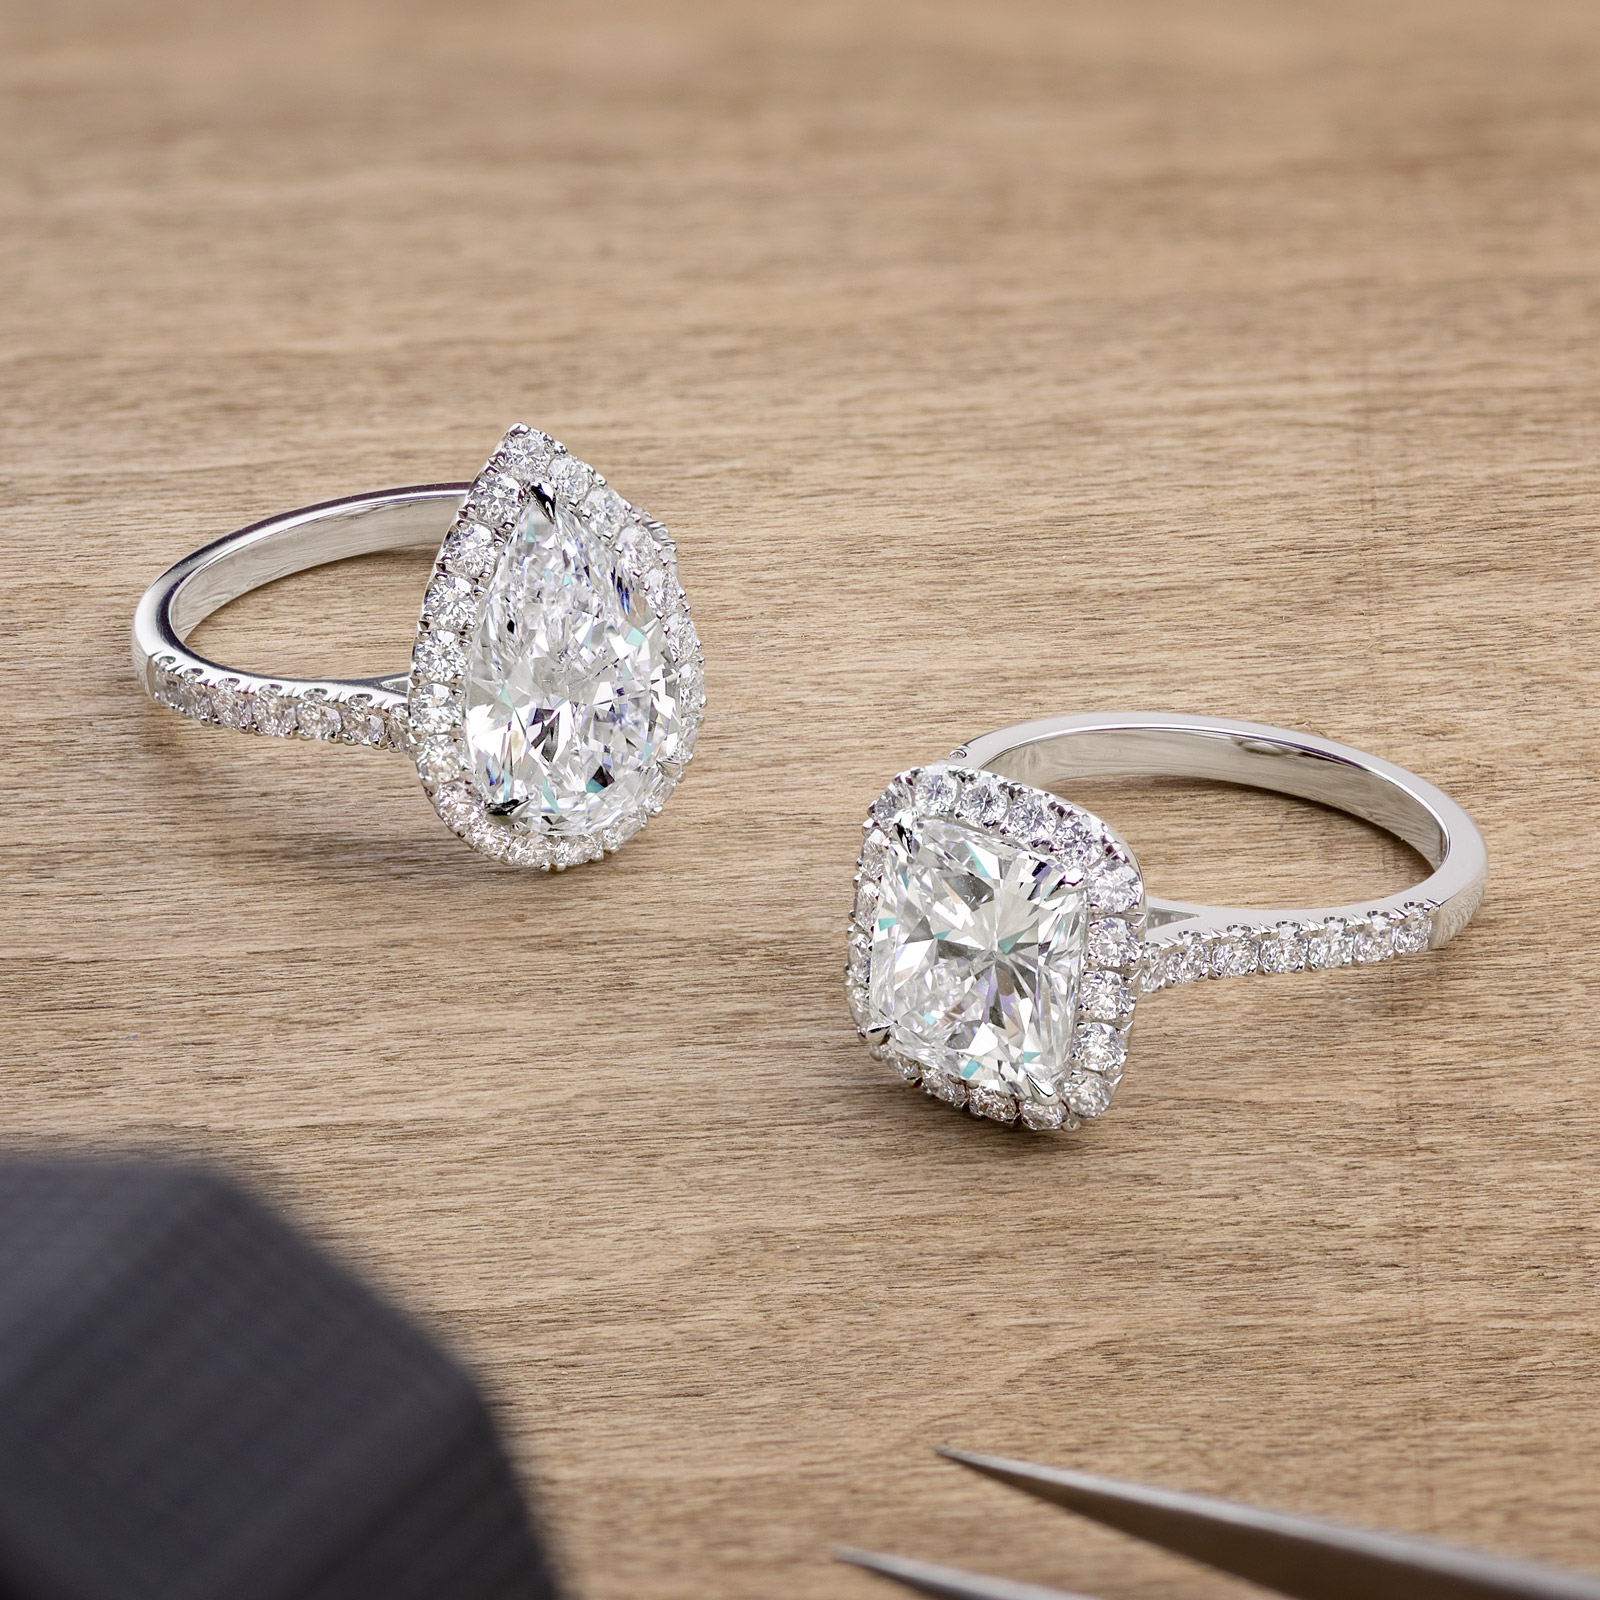 Our Guide to Diamonds